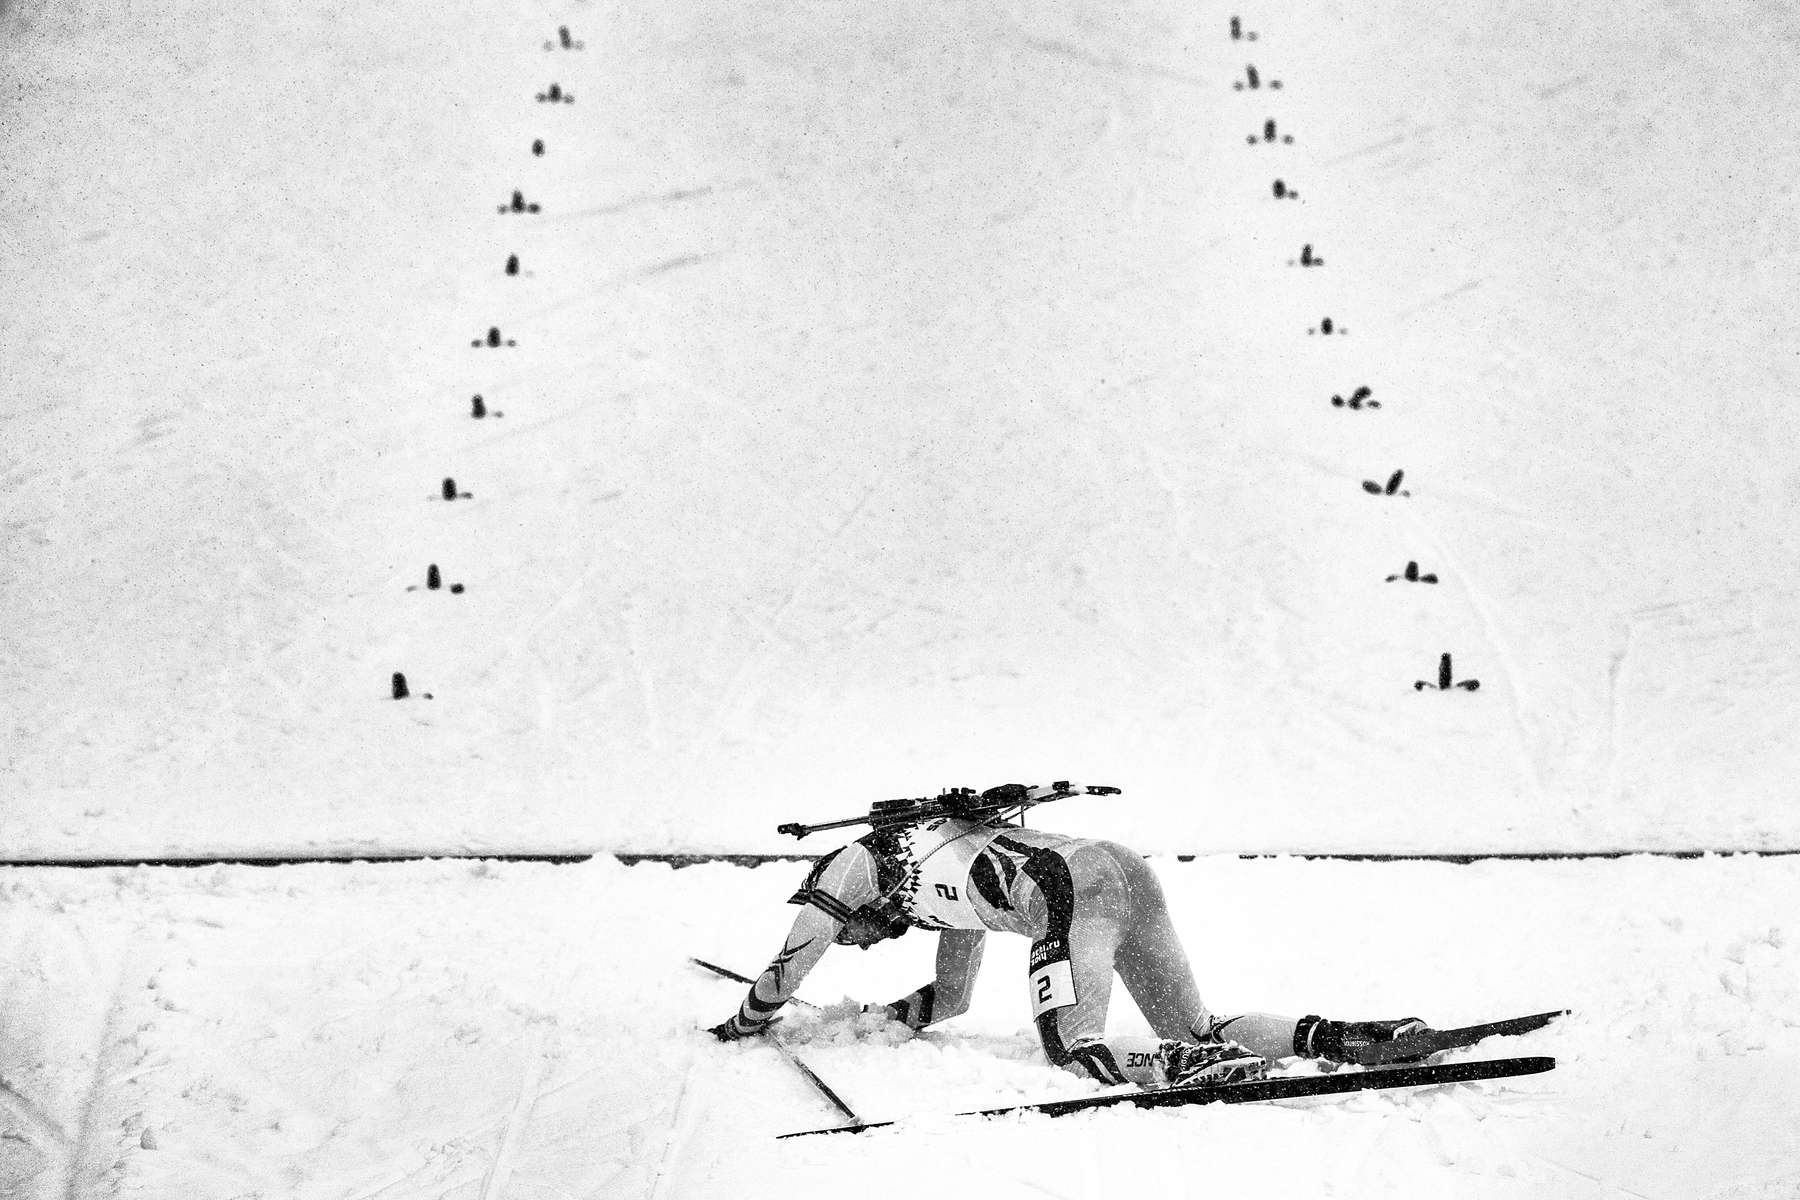 Men's Biathalon Sprint, Second Place.